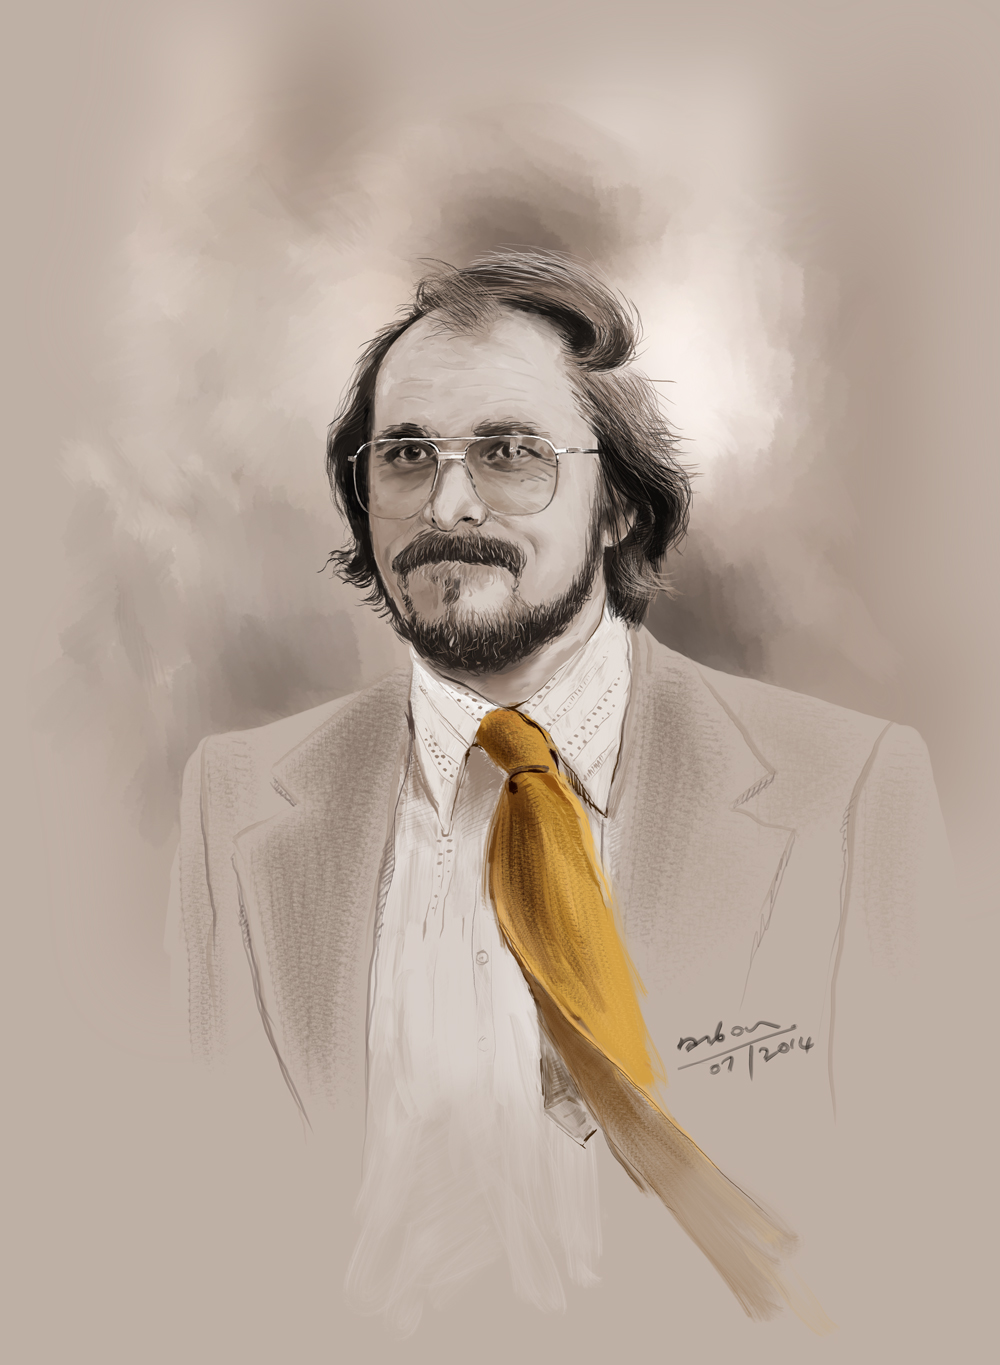 Irving Rosenfeld Beautiful Digital Portrait Of Christian Bale As Irving Rosenfeld